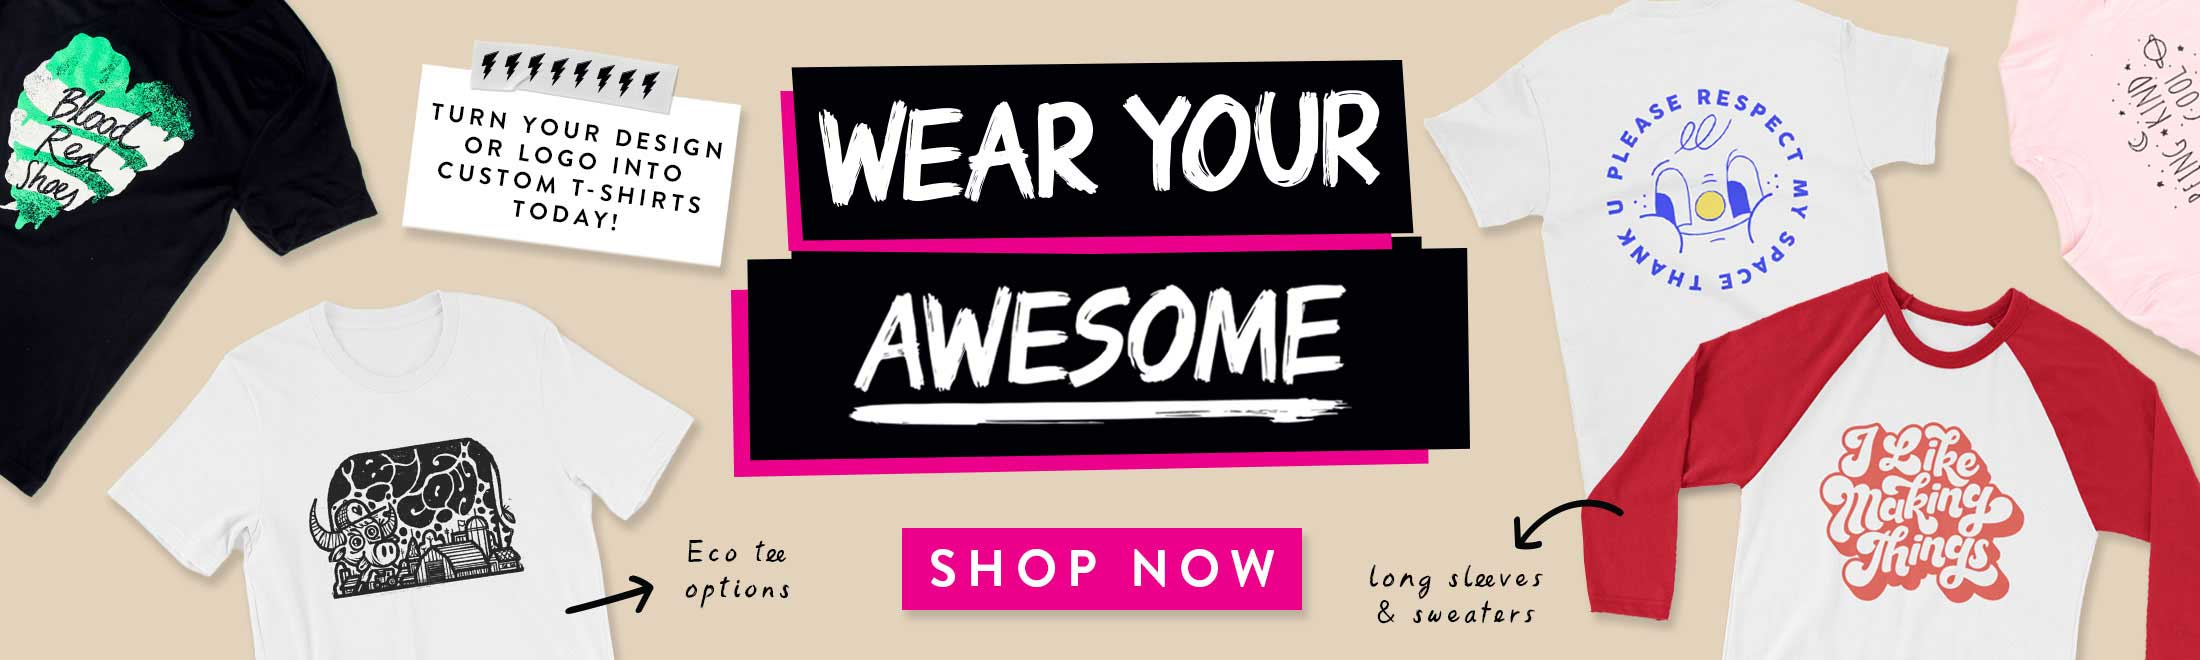 Awesome stickers banner 600 products main slider awesome t shirts banner